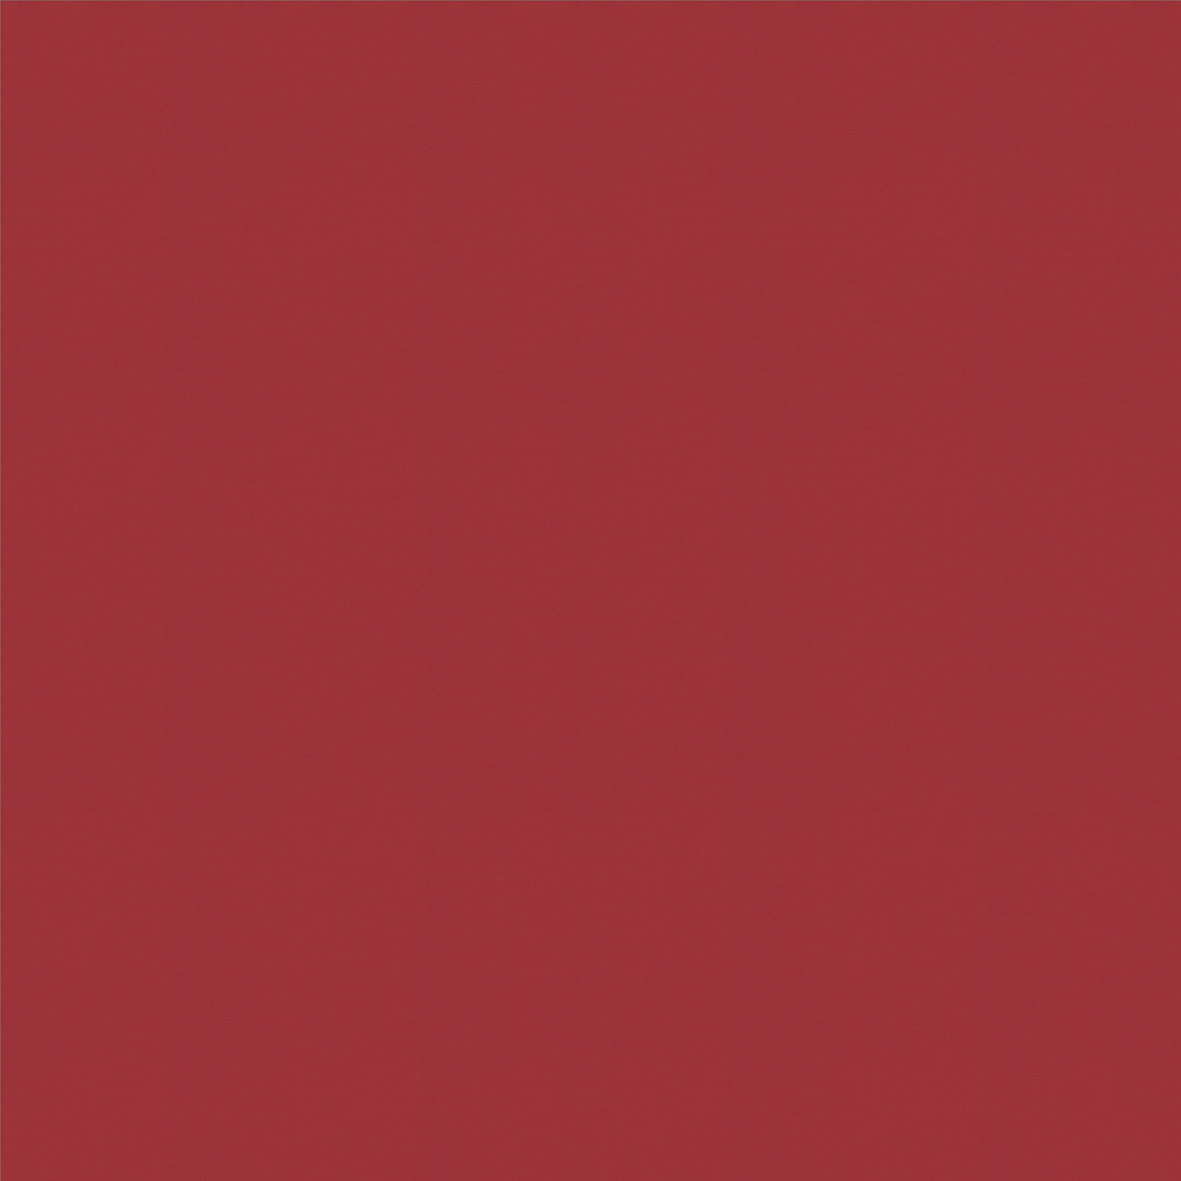 Roller_Swatch_Palette_Redcurrant_RE0063